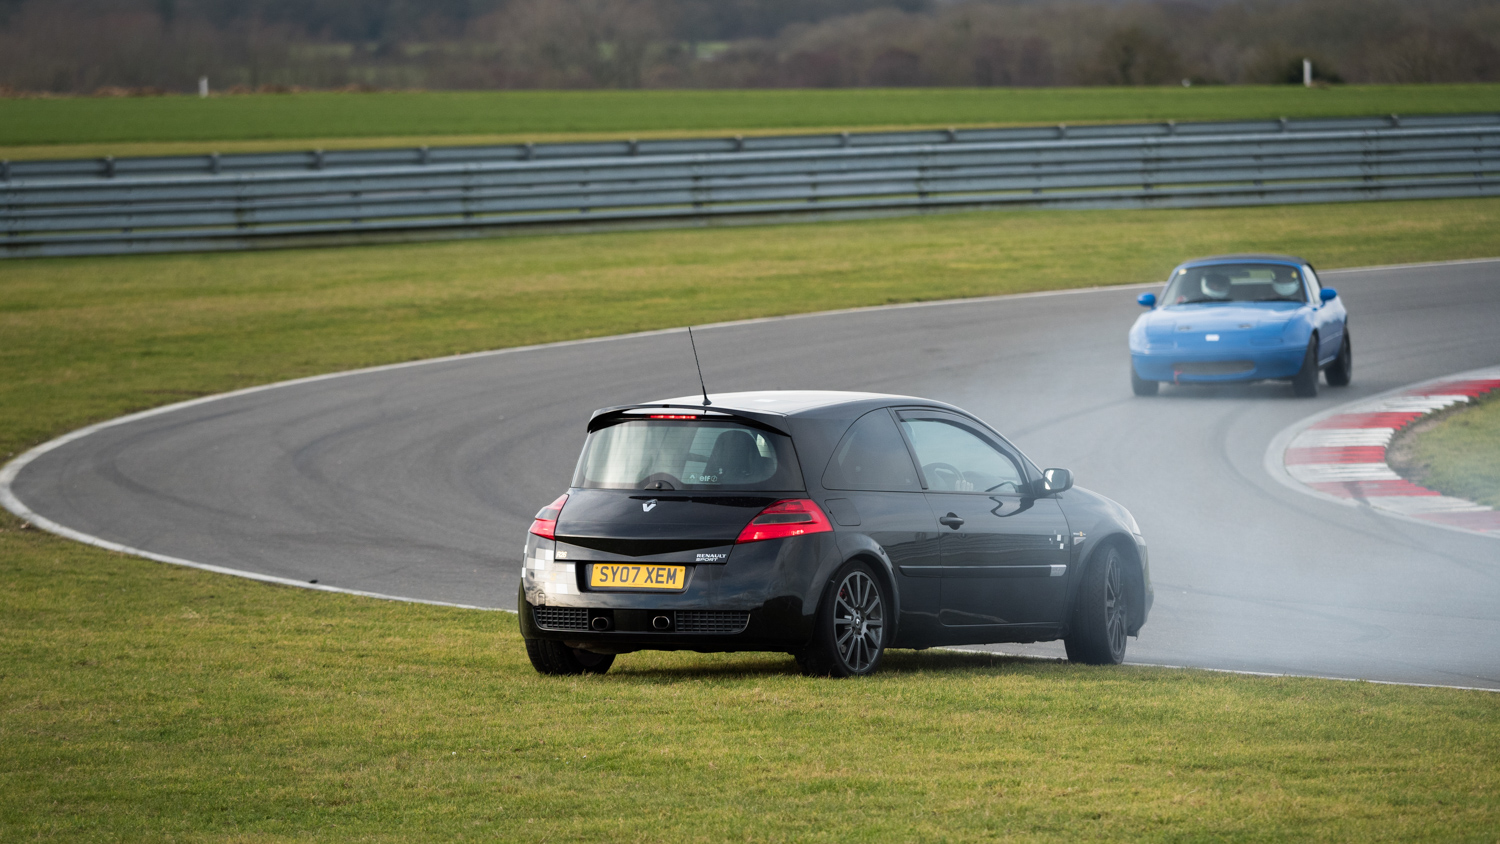 This spinning car at Snetterton was one of a string of 28 frames I shot when things began to go wrong. Of the 28 shots there were only three which missed sharp focus.